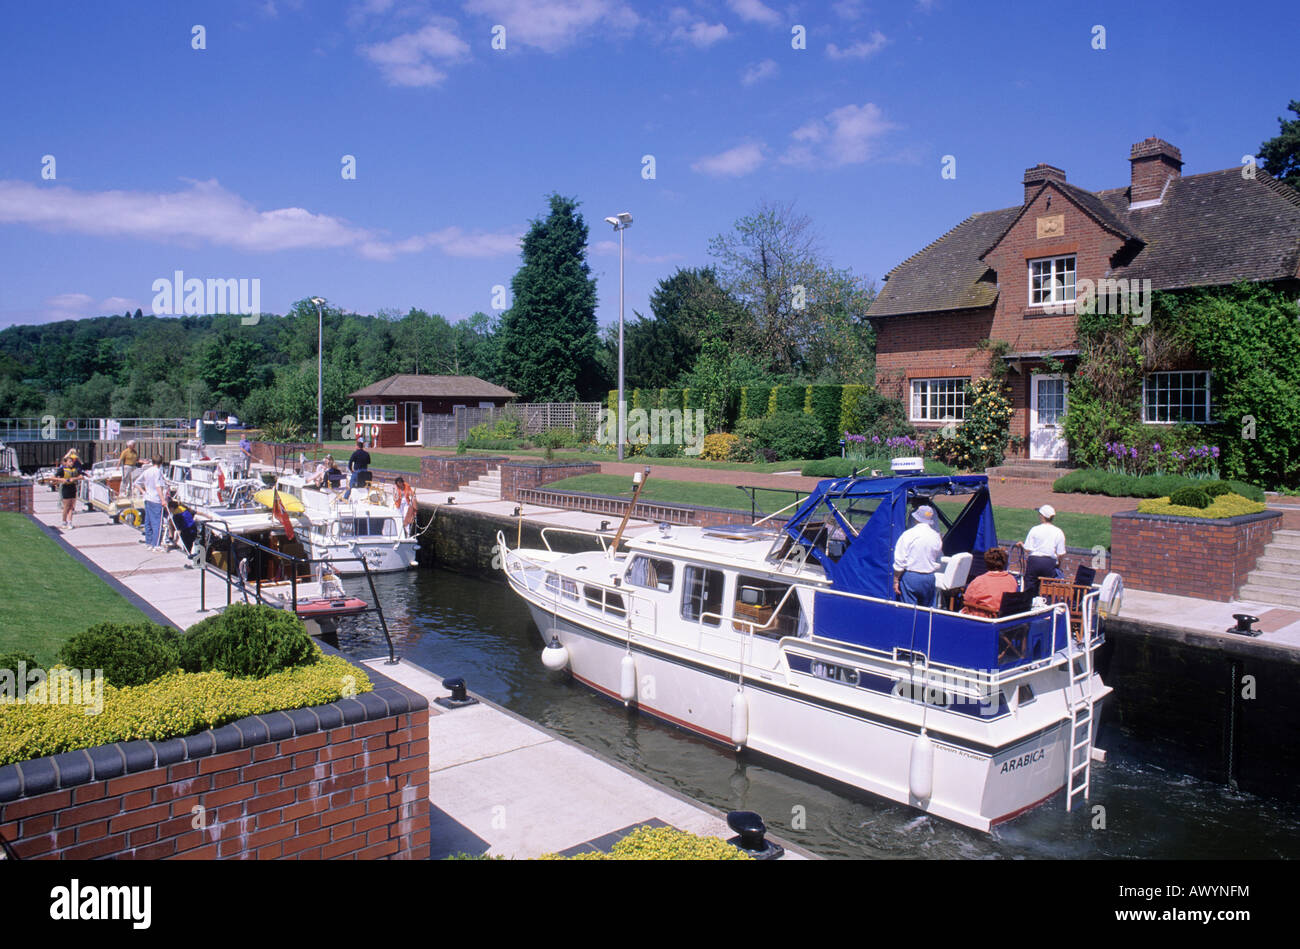 Hambleden Lock gates River Thames valley house cruising cruise cruisers boats people holidays afloat Berkshire England - Stock Image